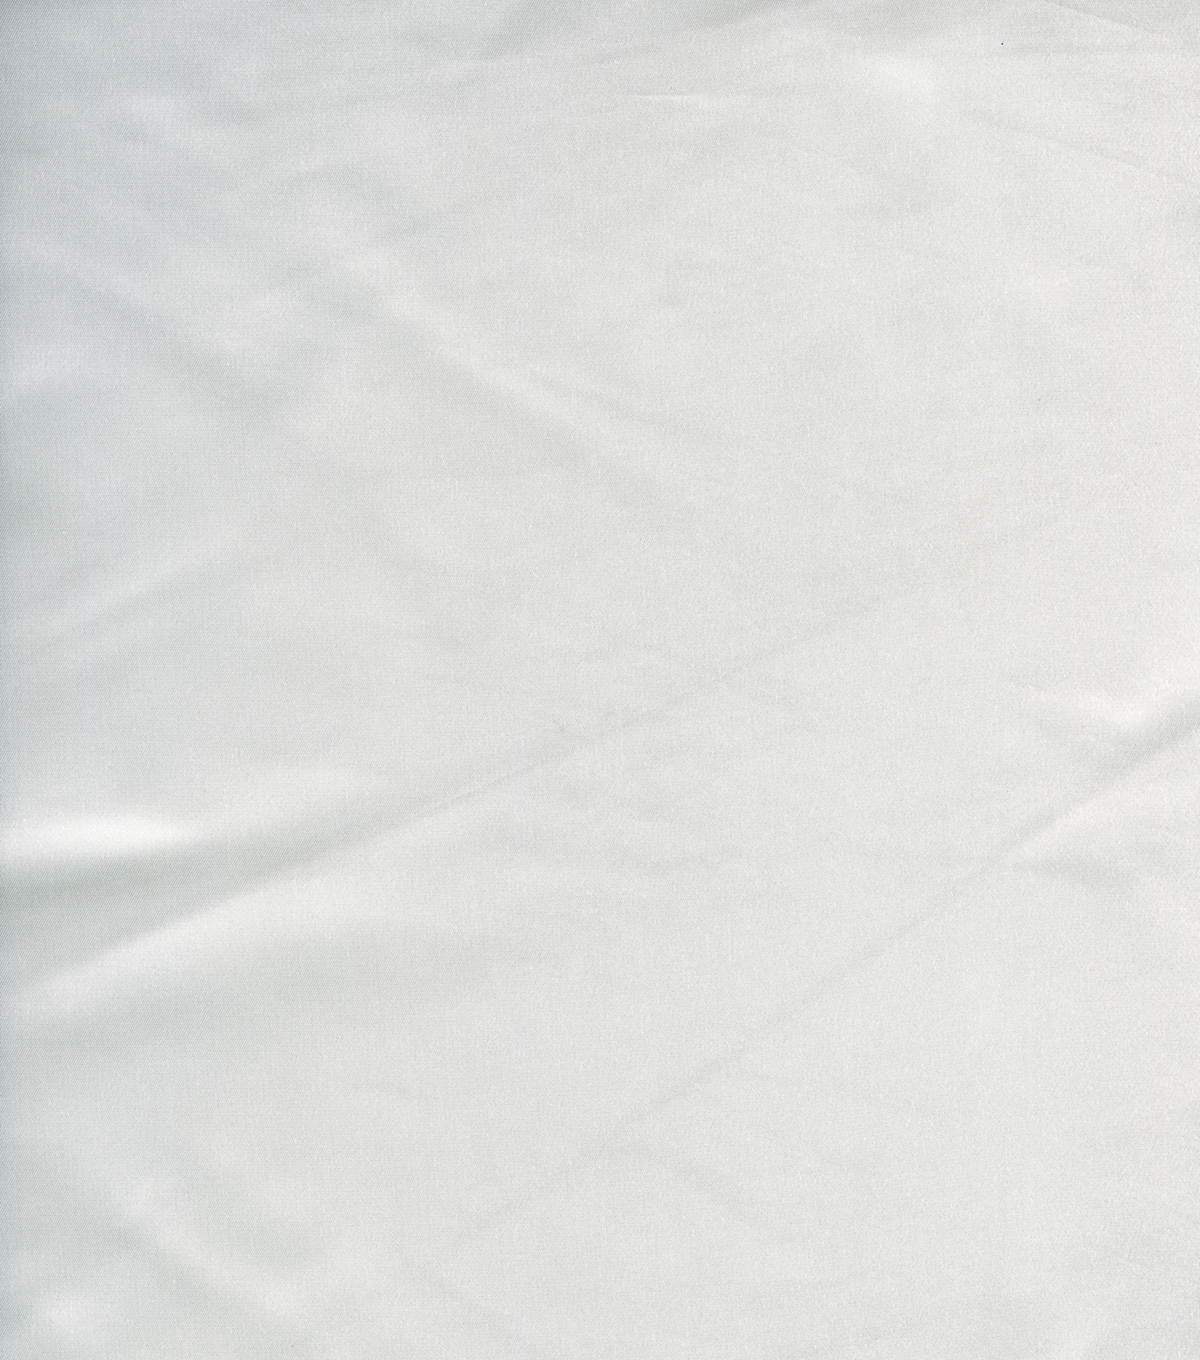 Casa Collection Shiny Satin Fabric, White